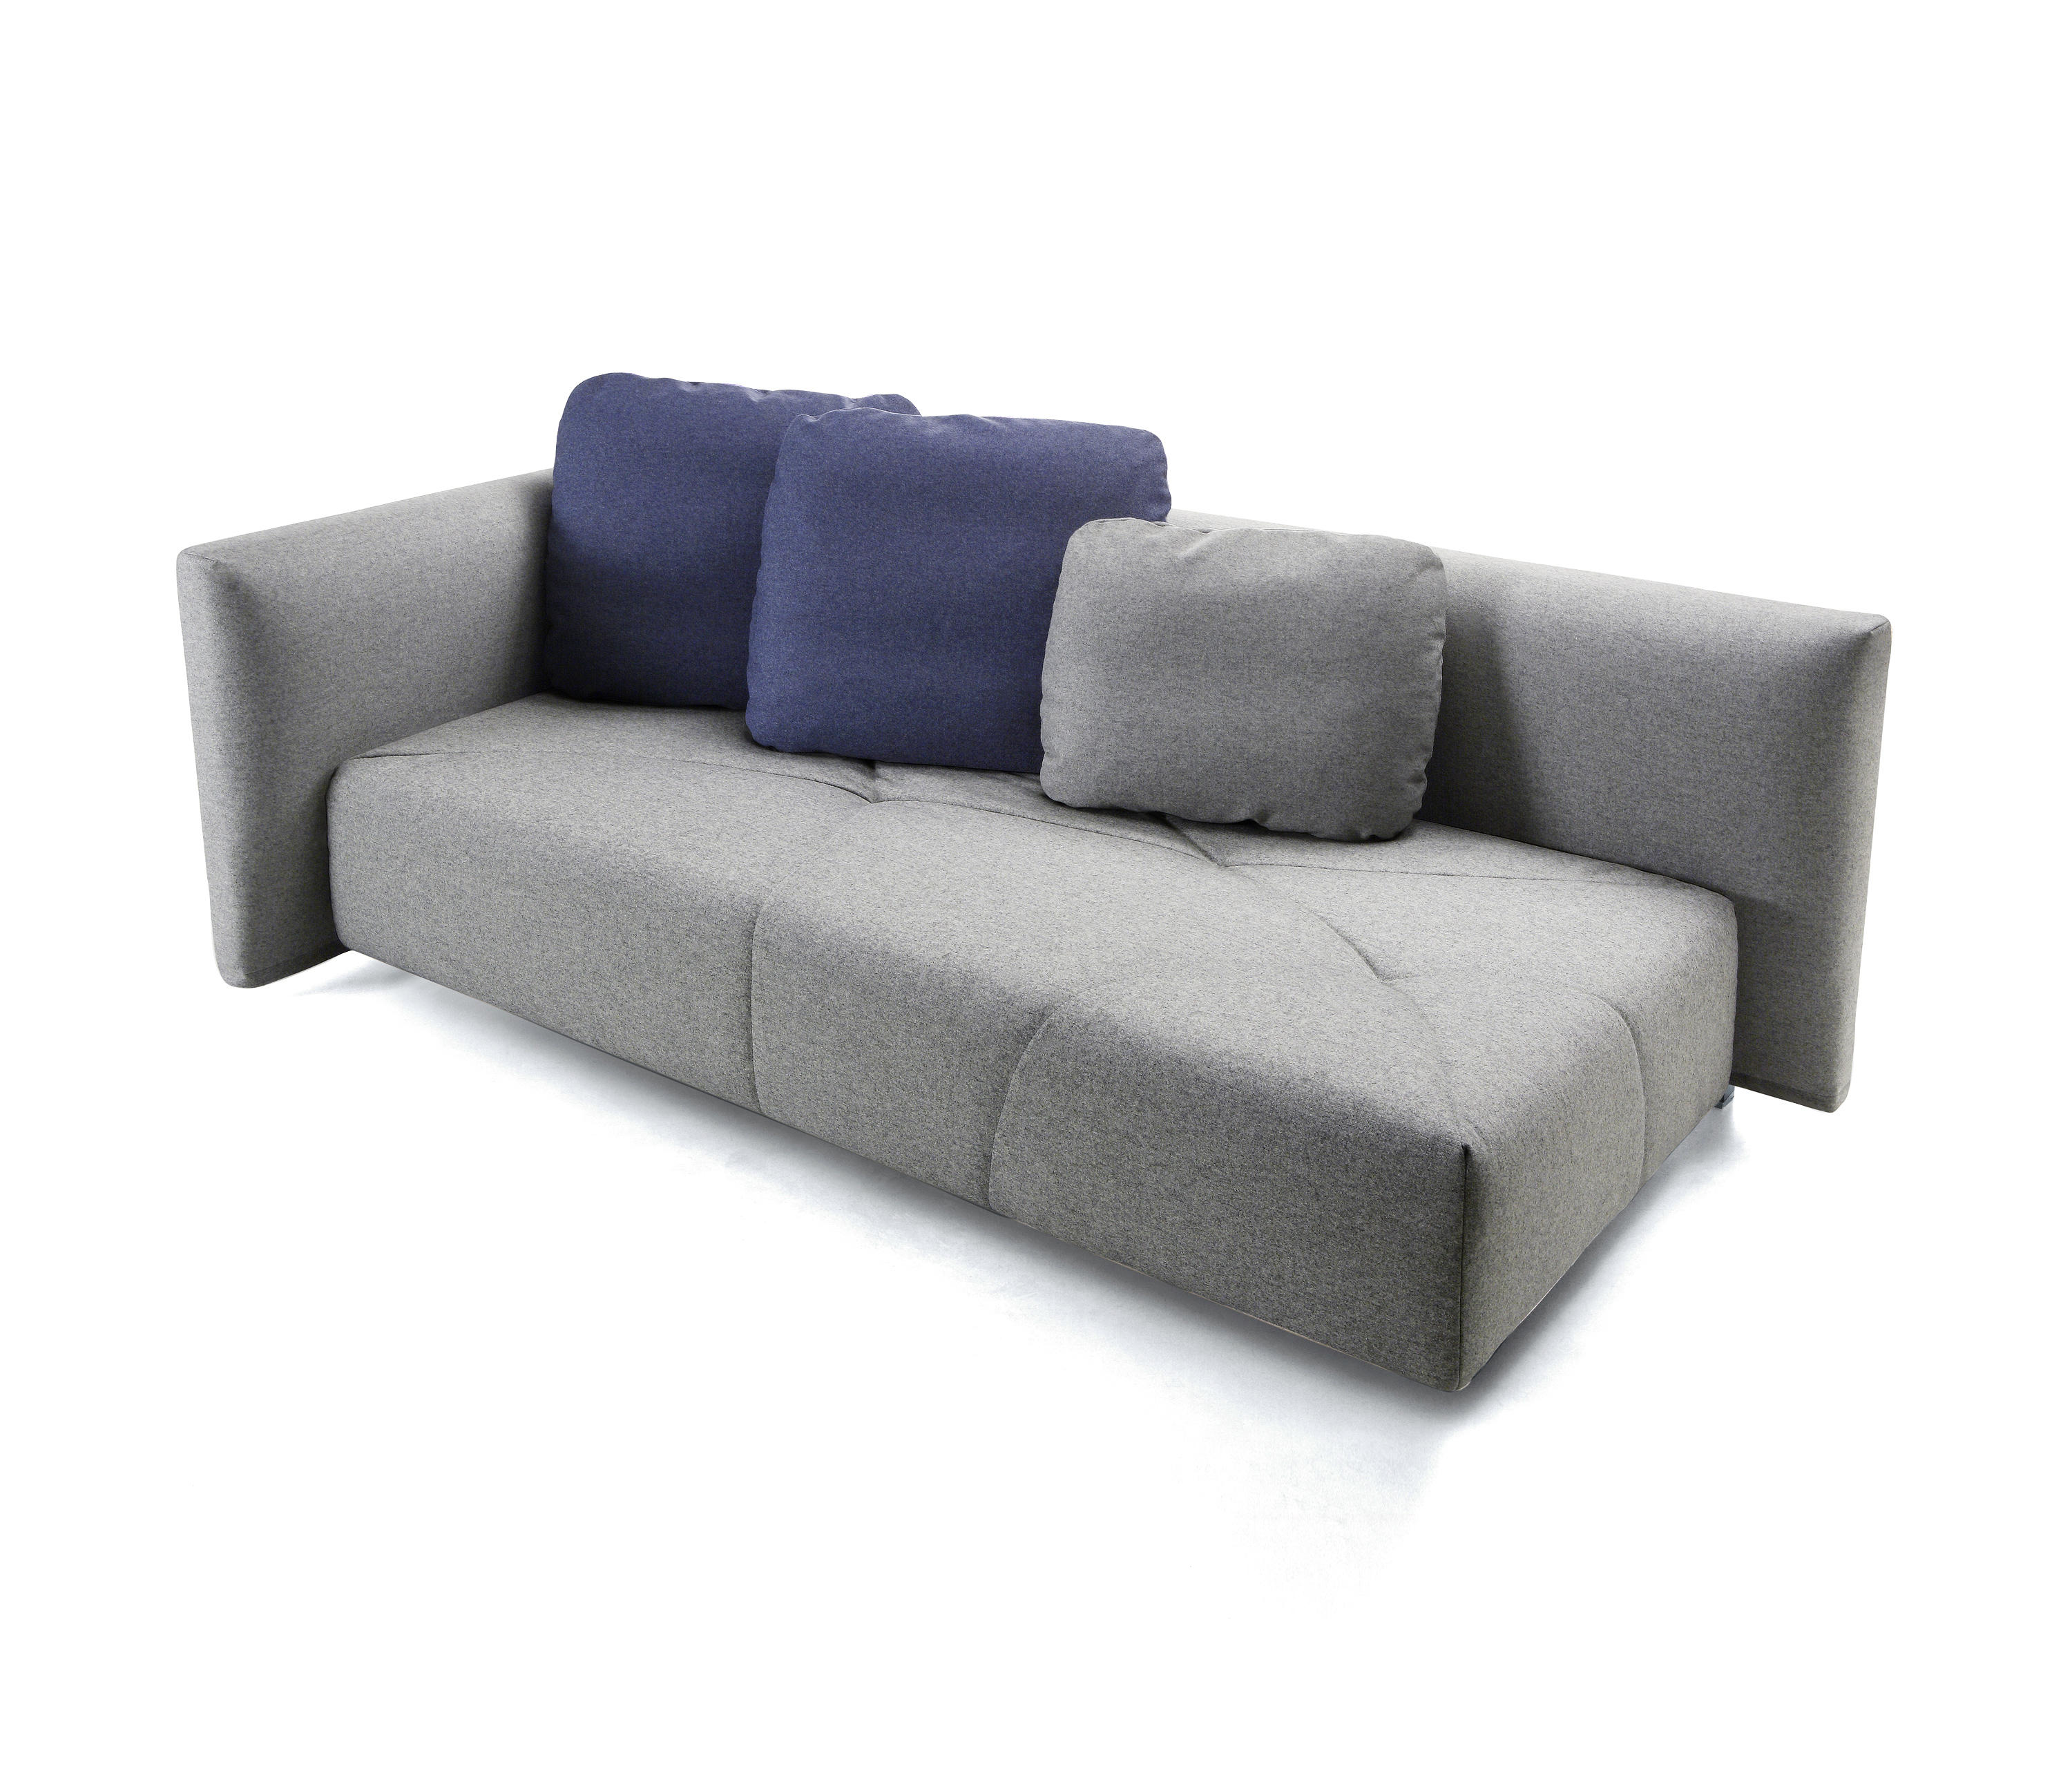 Big Sofa 290 Cm Bedbed Single Sofas From Design You Edit Architonic